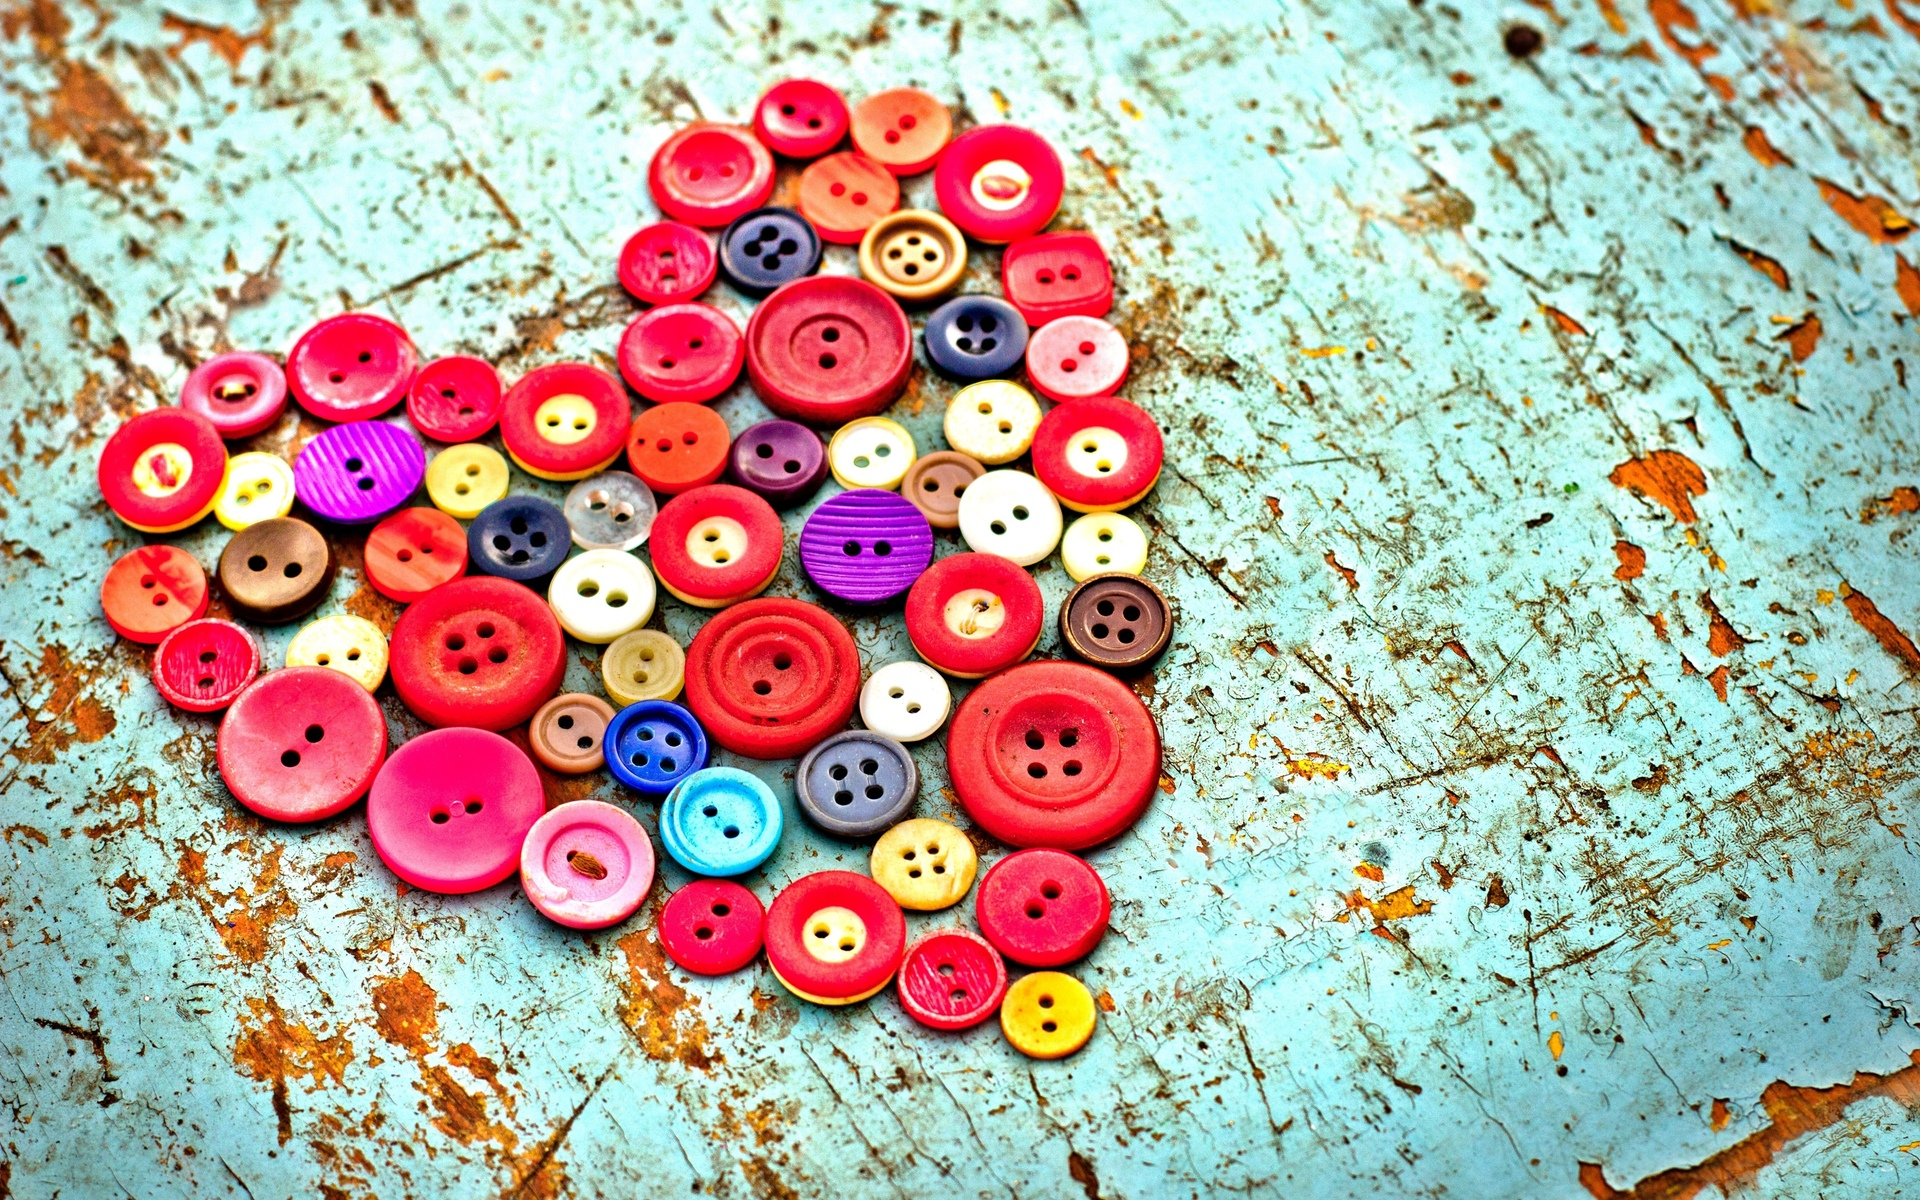 love romance heart artistic buttons color contrast emotion mood